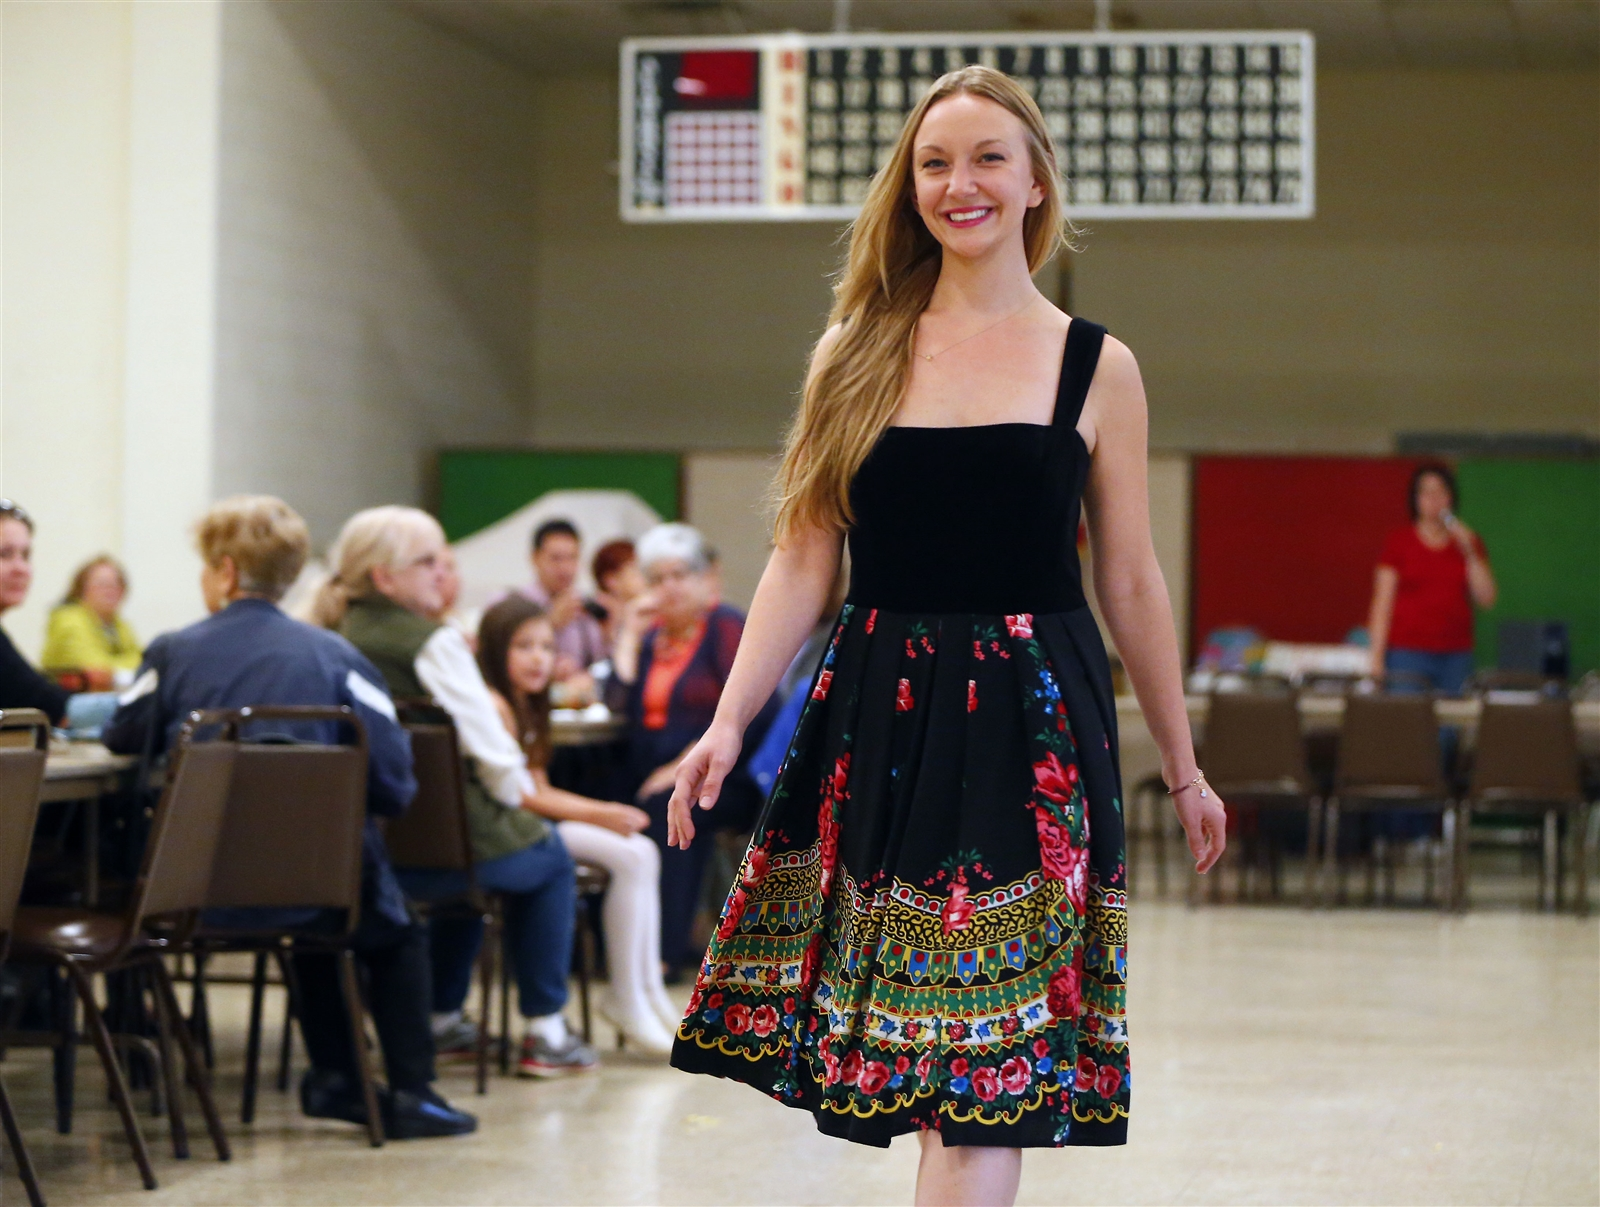 Model Corinne Lasek wears a dress designed by Recultured Designs of Warsaw, Poland, during a fashion show celebrating Polish women and the beginning of Polish Heritage month at the Holy Mother of the Rosary Parish hall in Lancaster on Saturday, Oct. 1, 2016.